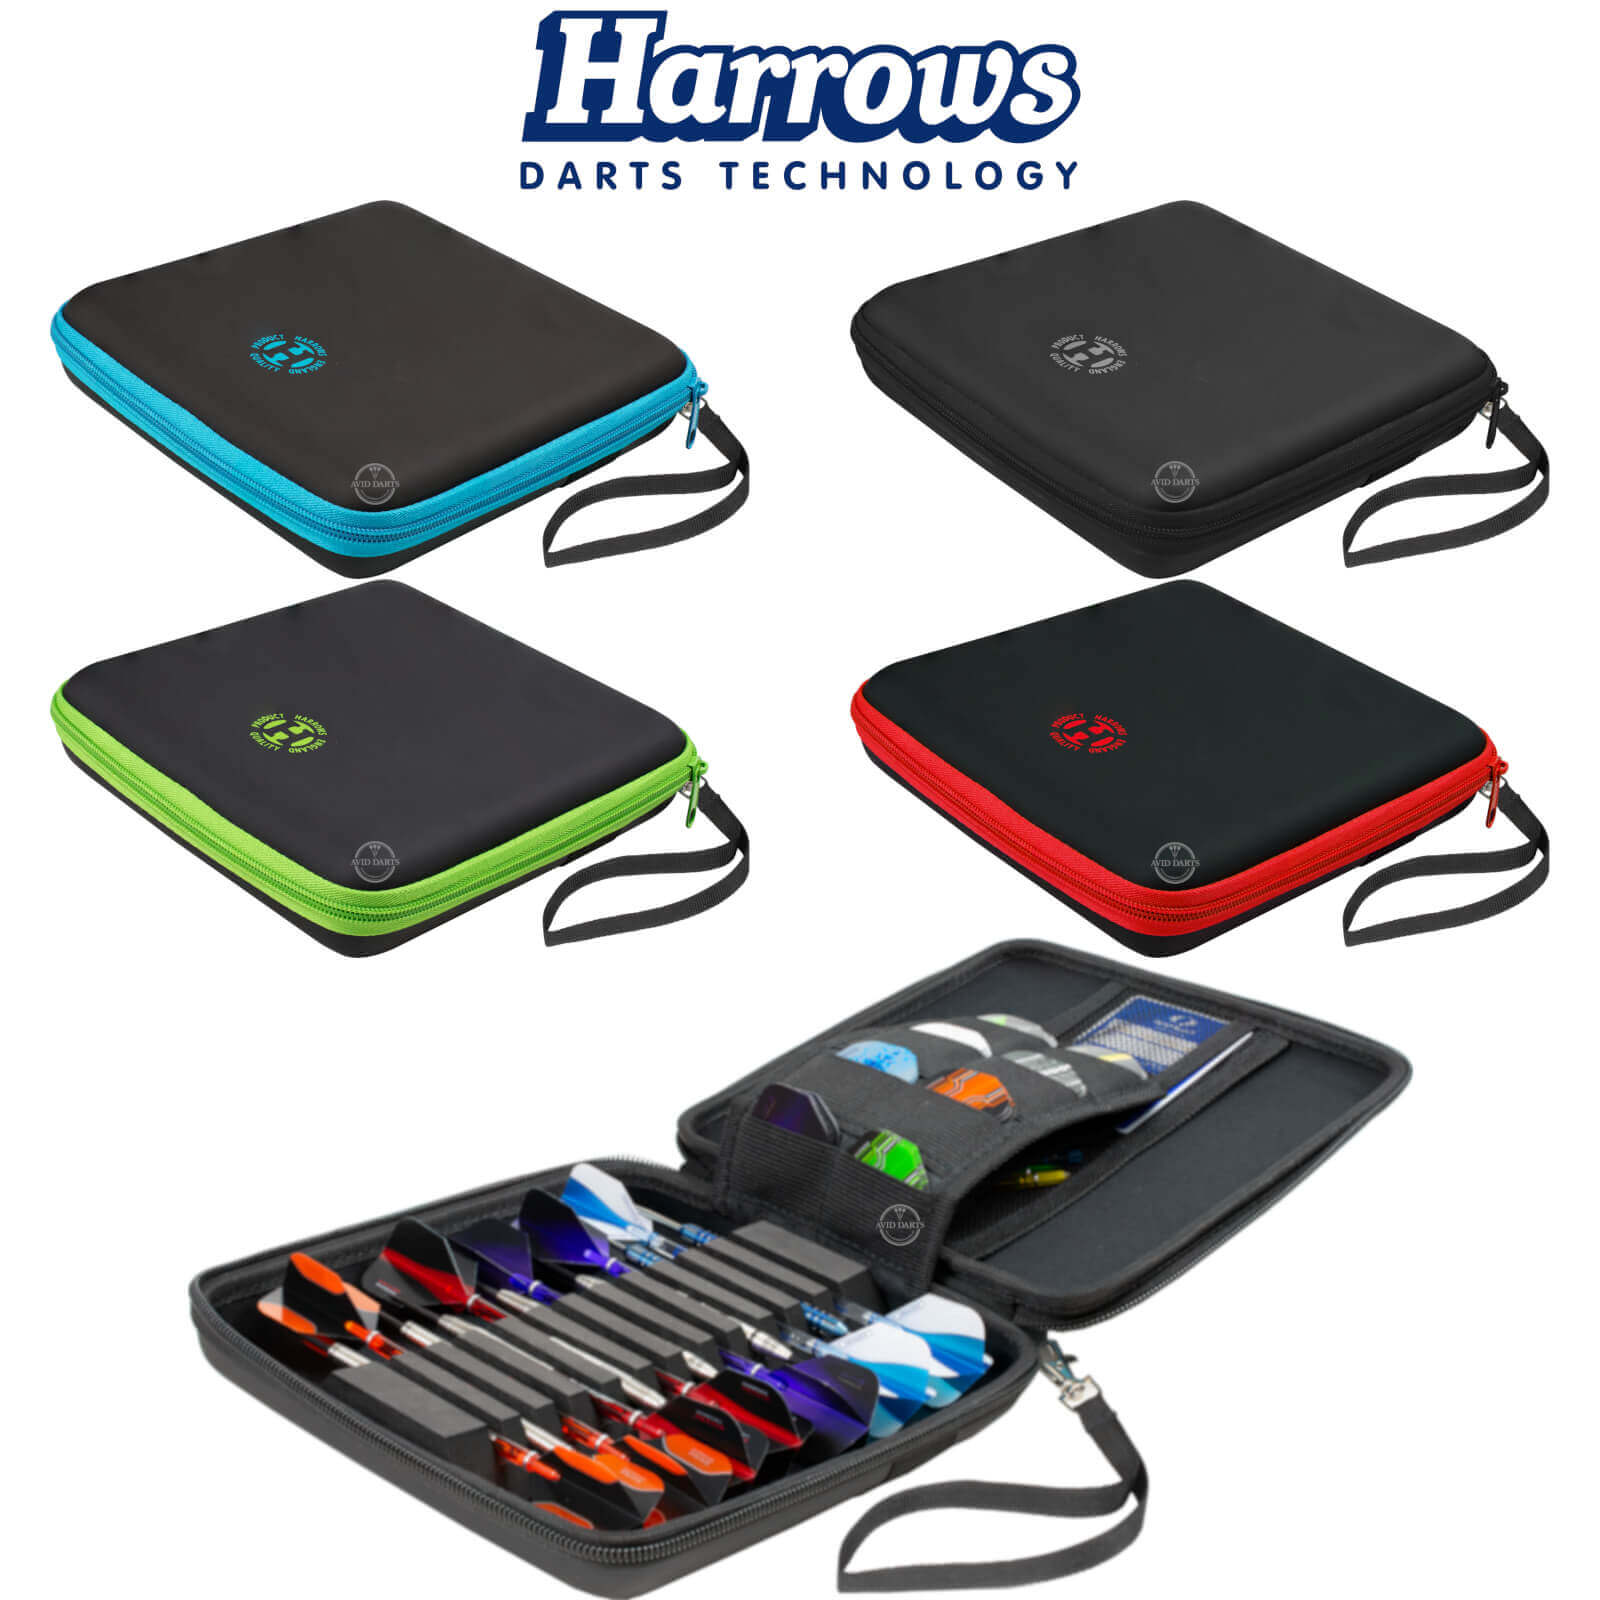 Dart Cases - Harrows - Blaze Pro 12 Dart Cases